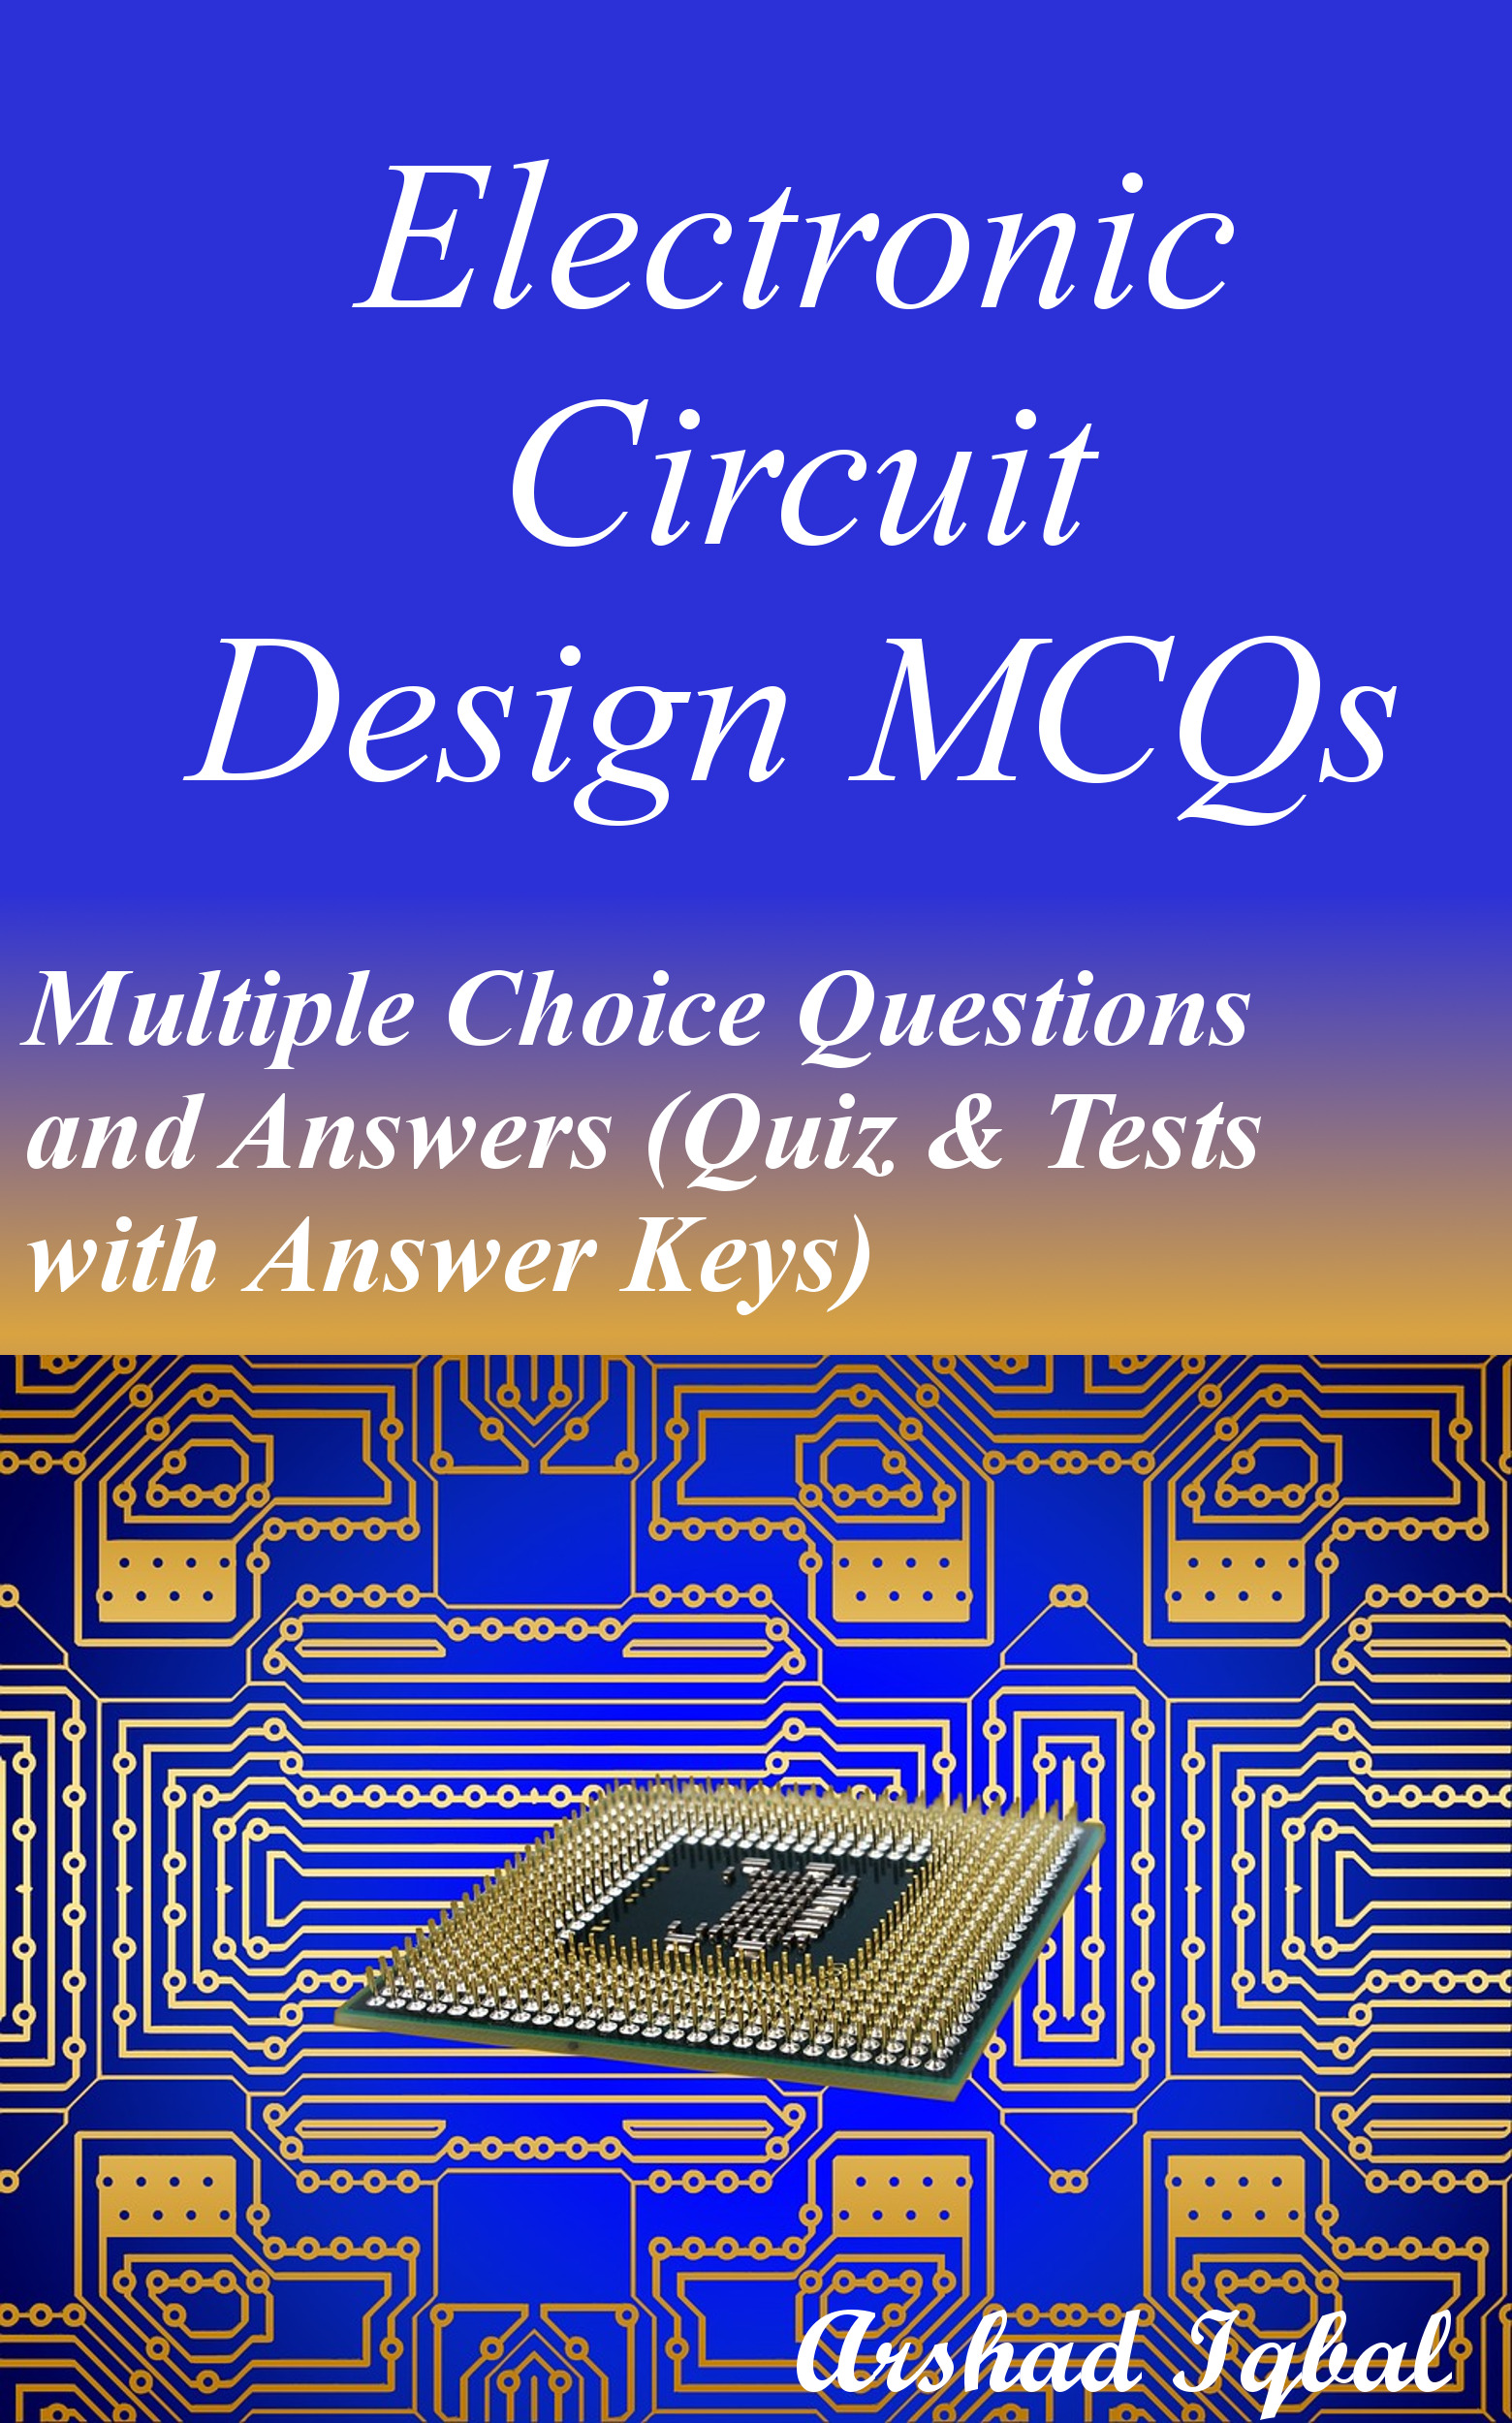 Electronics Circuit Design MCQs: Multiple Choice Questions and Answers (Quiz & Tests with Answer Keys)